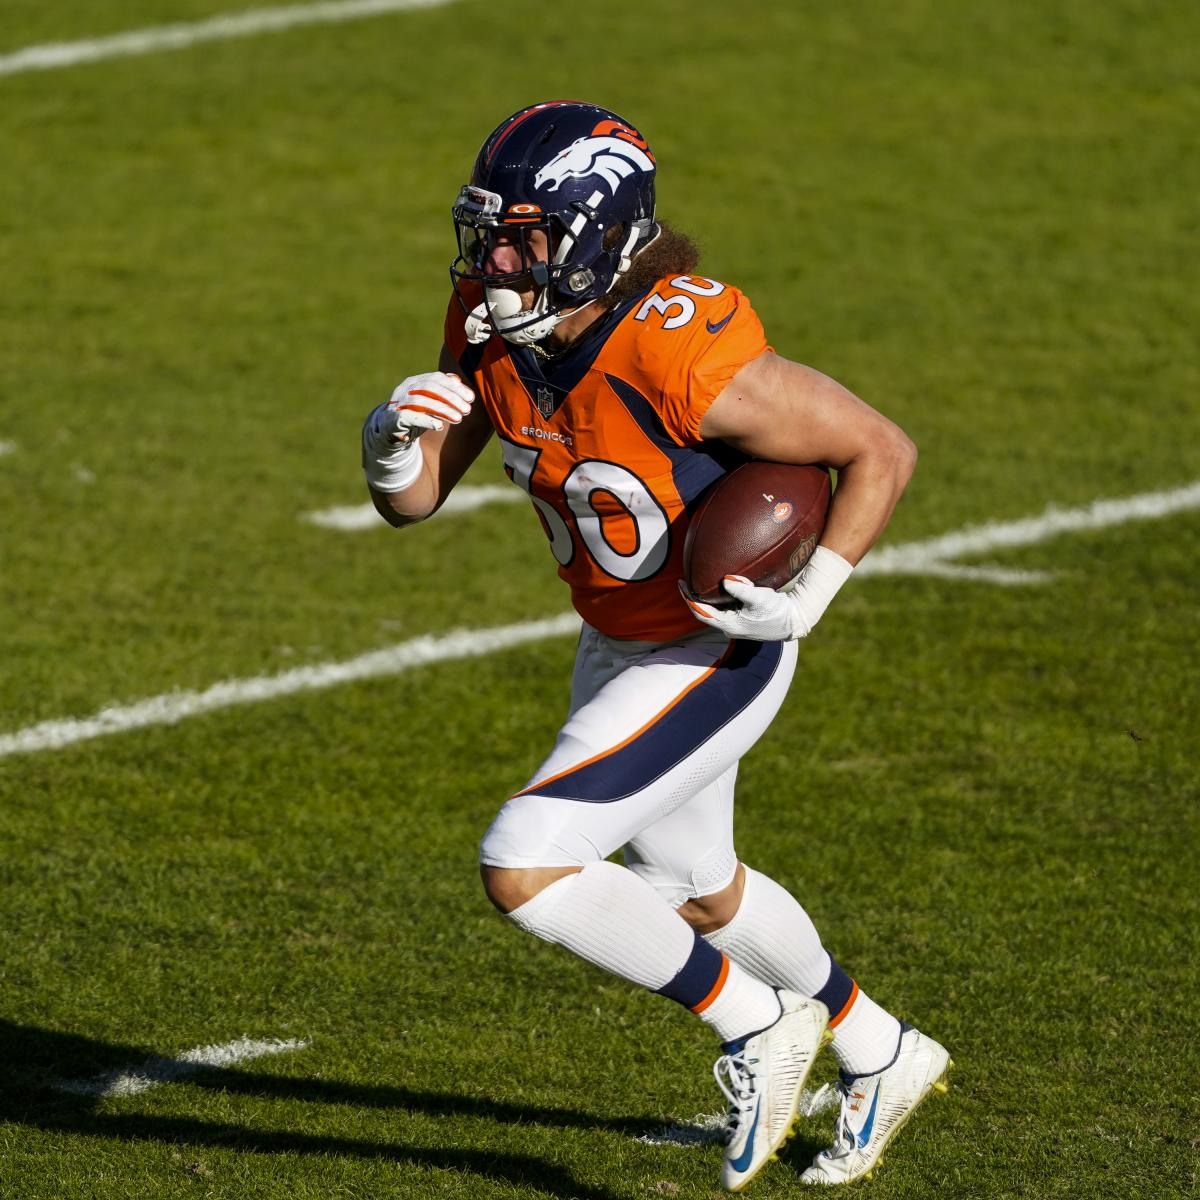 Phillip Lindsay, Broncos Agree to Part Ways; Denver Rescinds RFA Tender